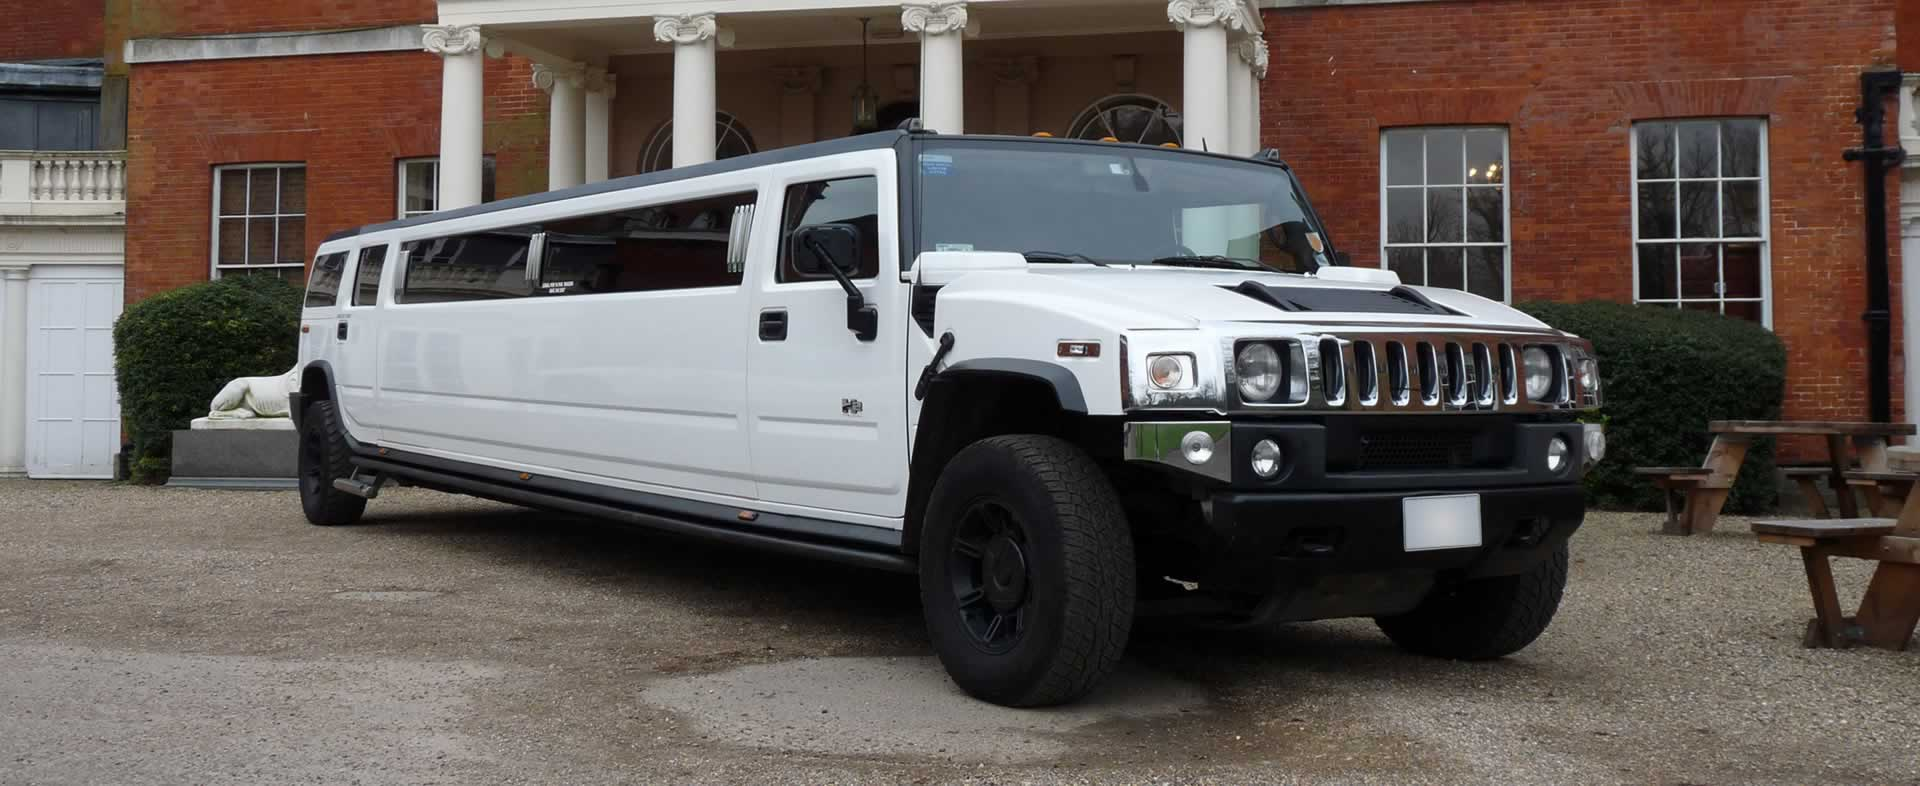 Hummer H2 Limo Hire From Limousines In London